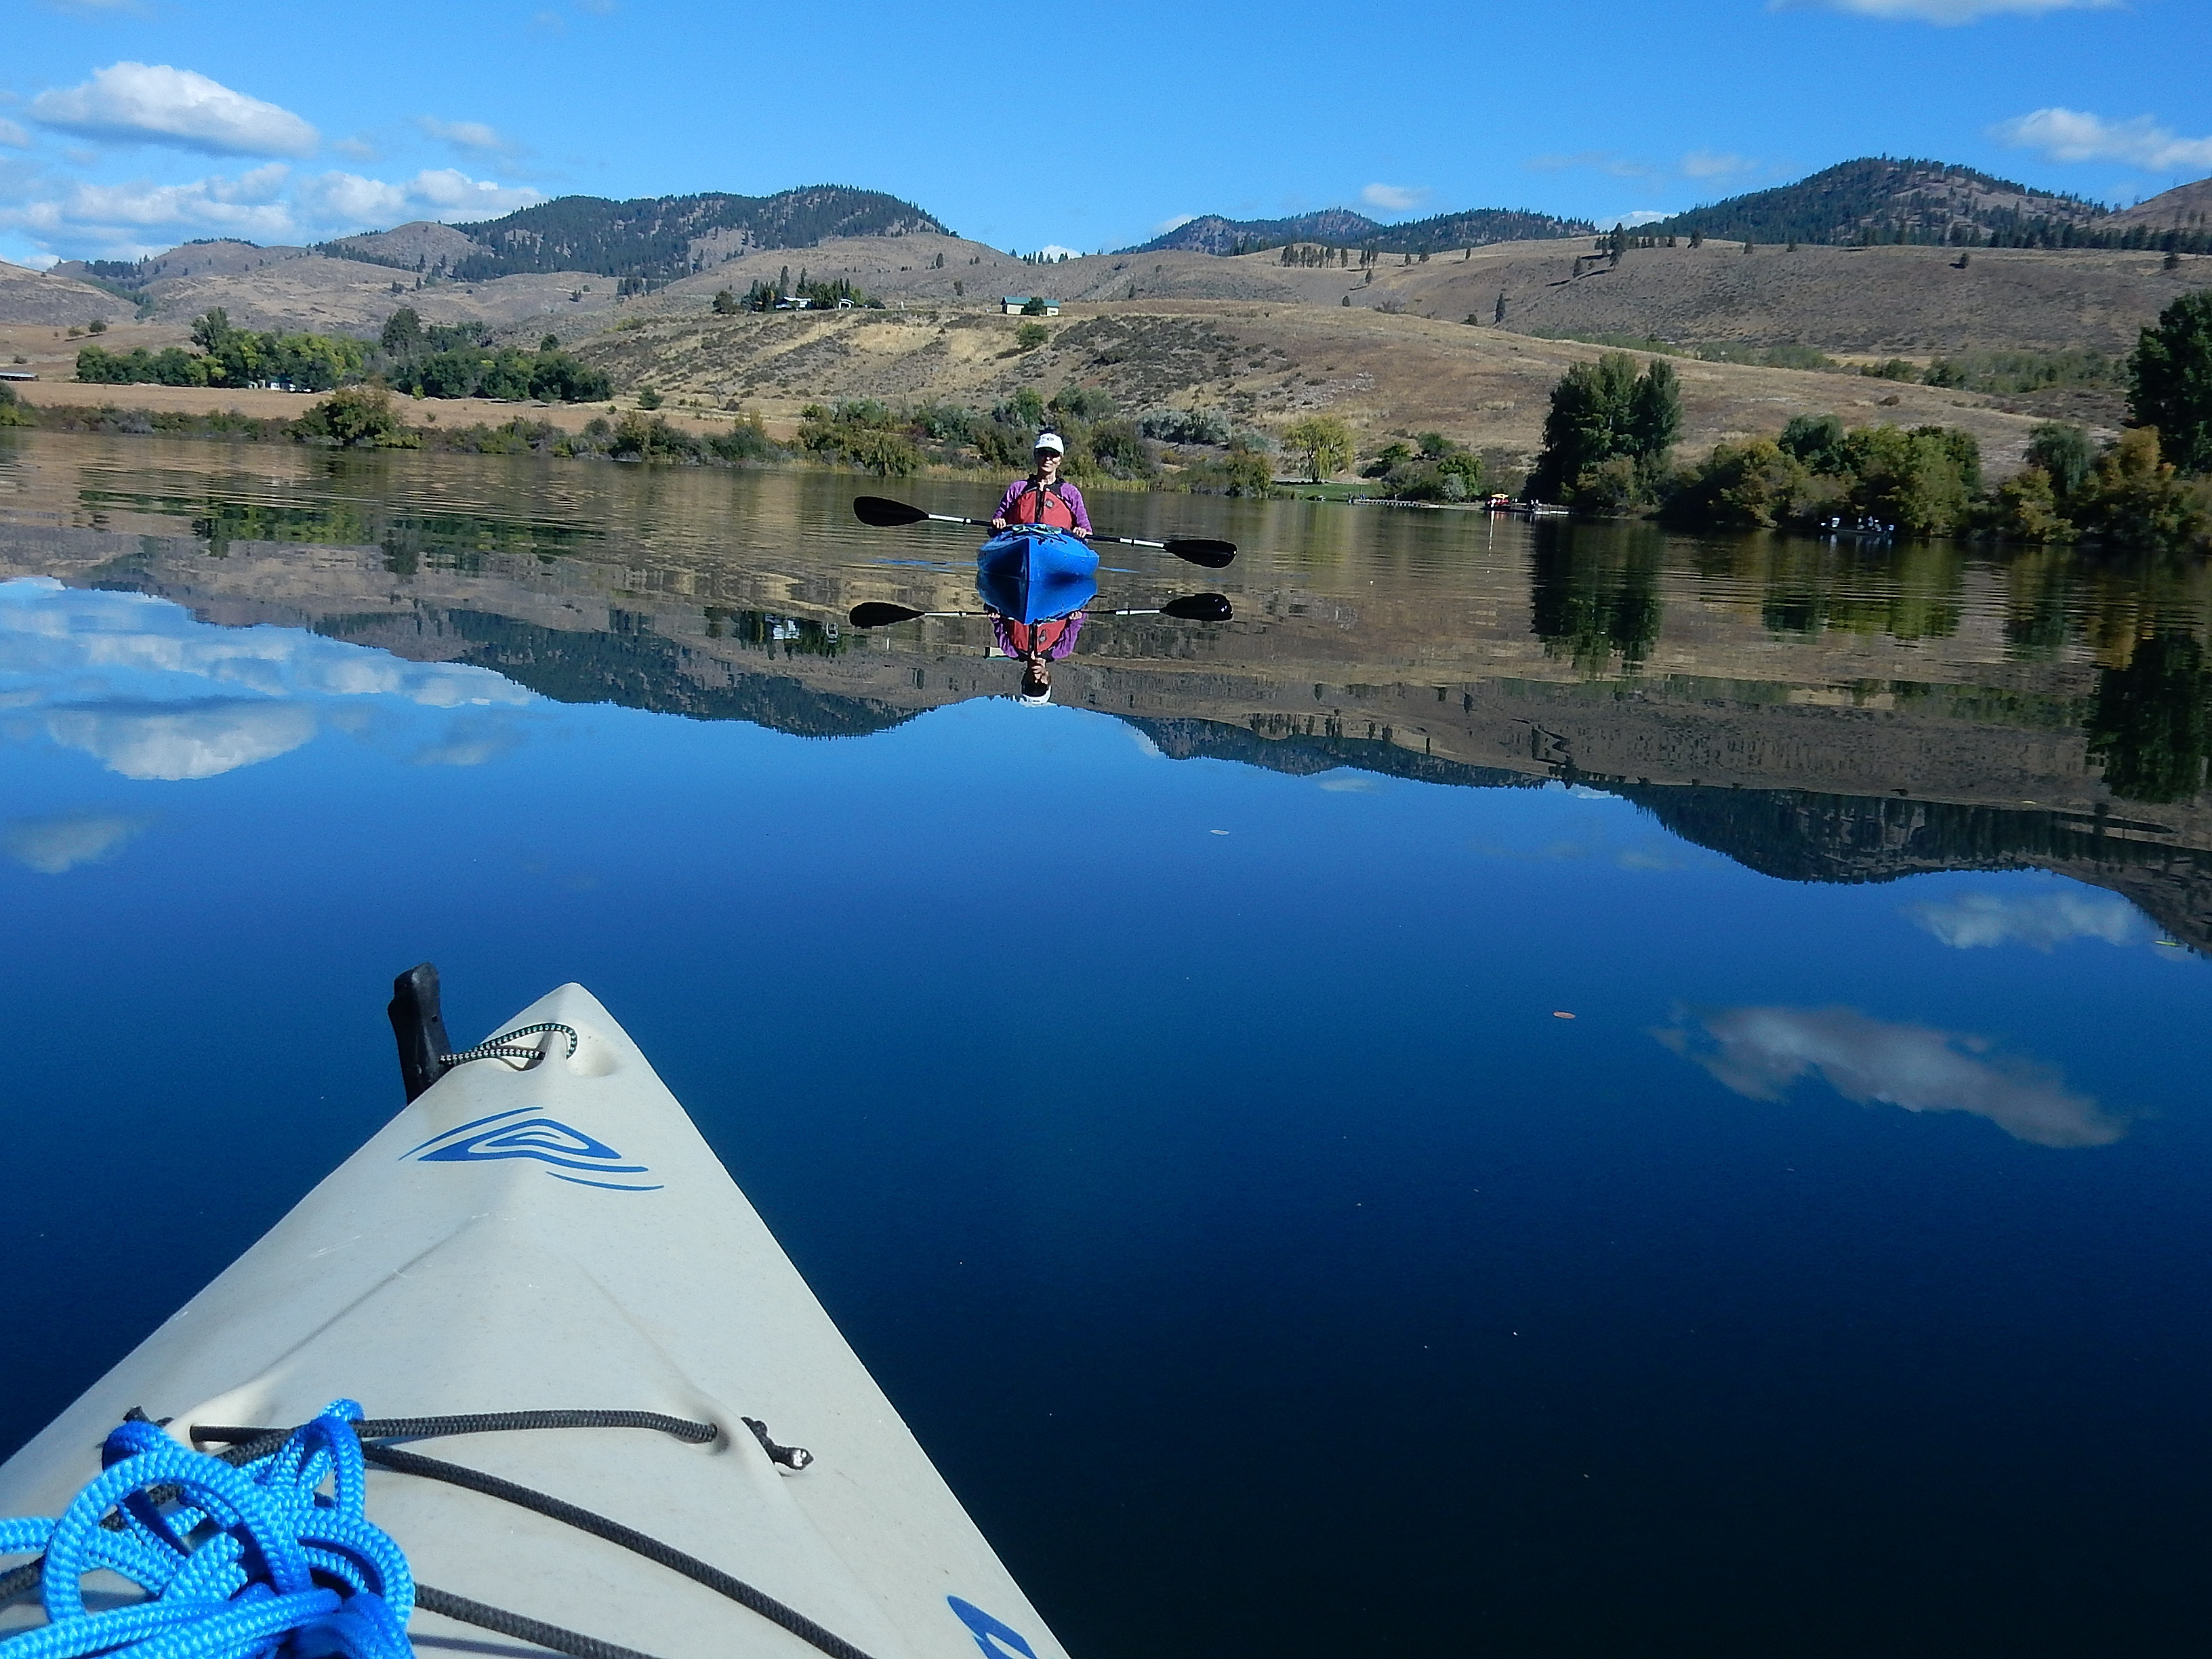 Kayaking on Pearrygin Lake. photo: Joe Meche